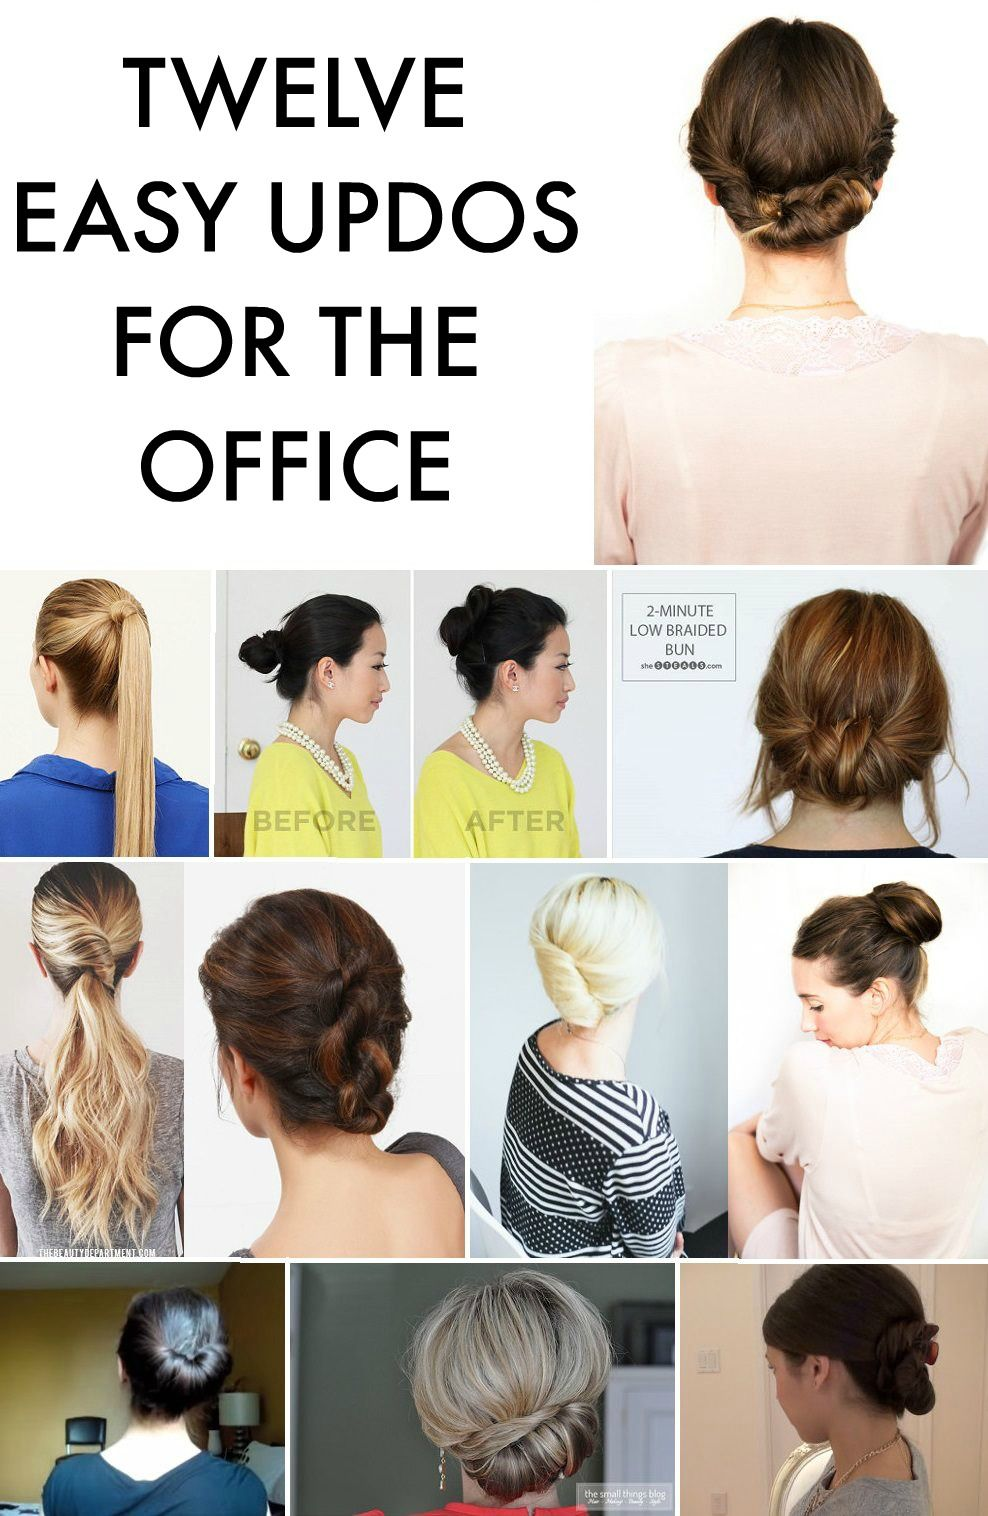 10 Easy Office Updos: Buns, Chignons & More for Busy for